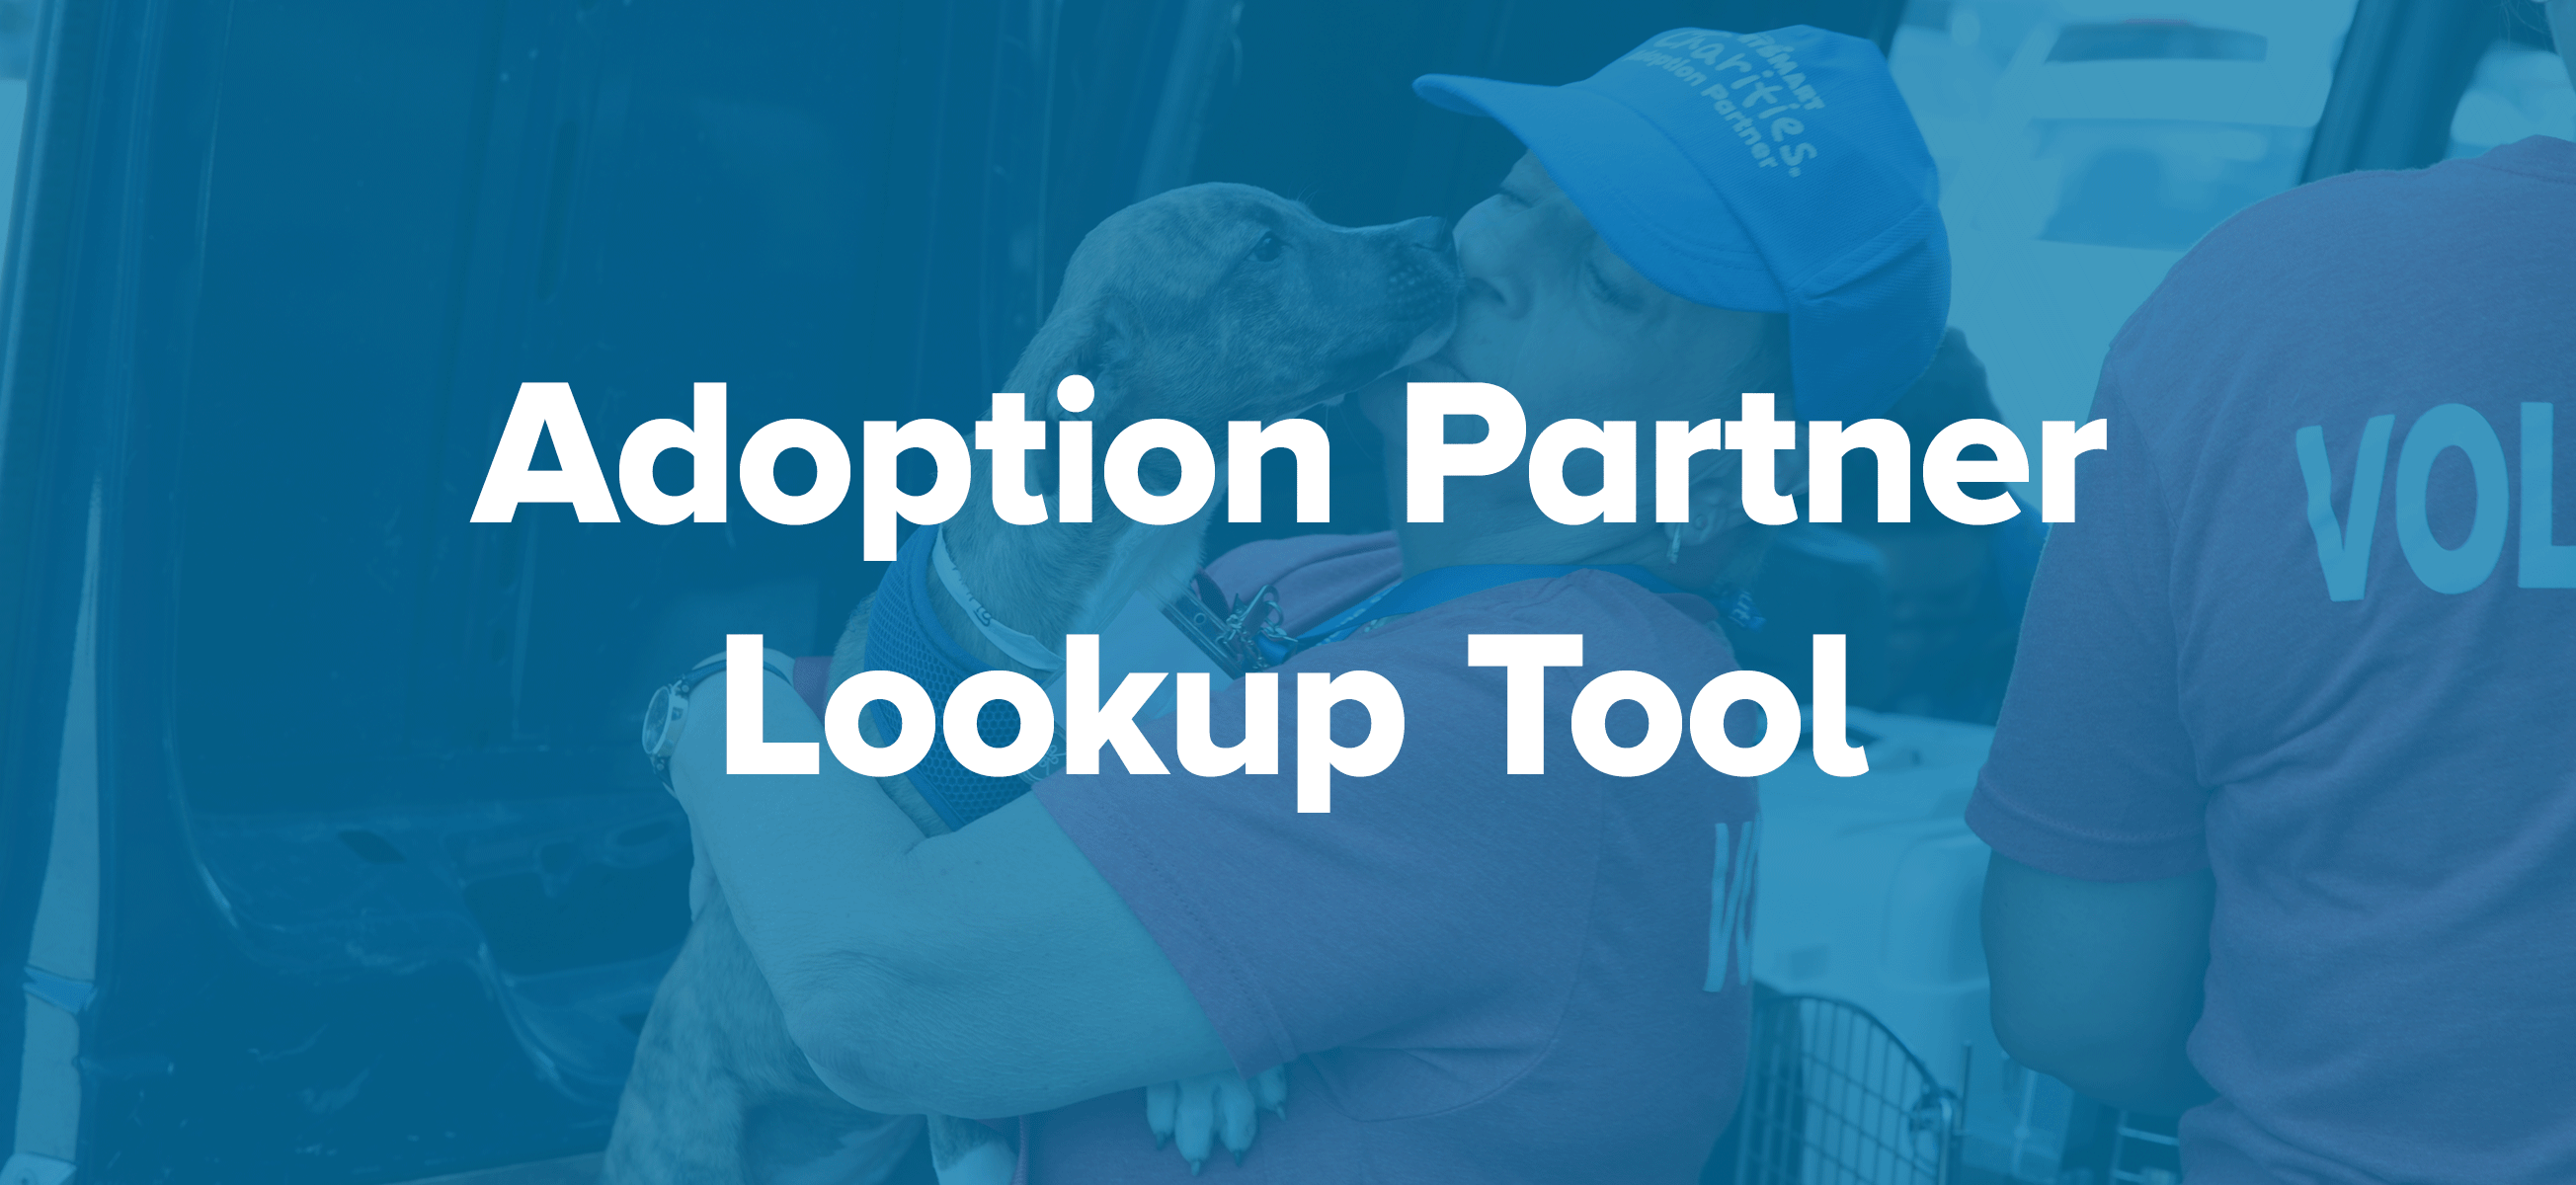 Adoption Partner Lookup Tool